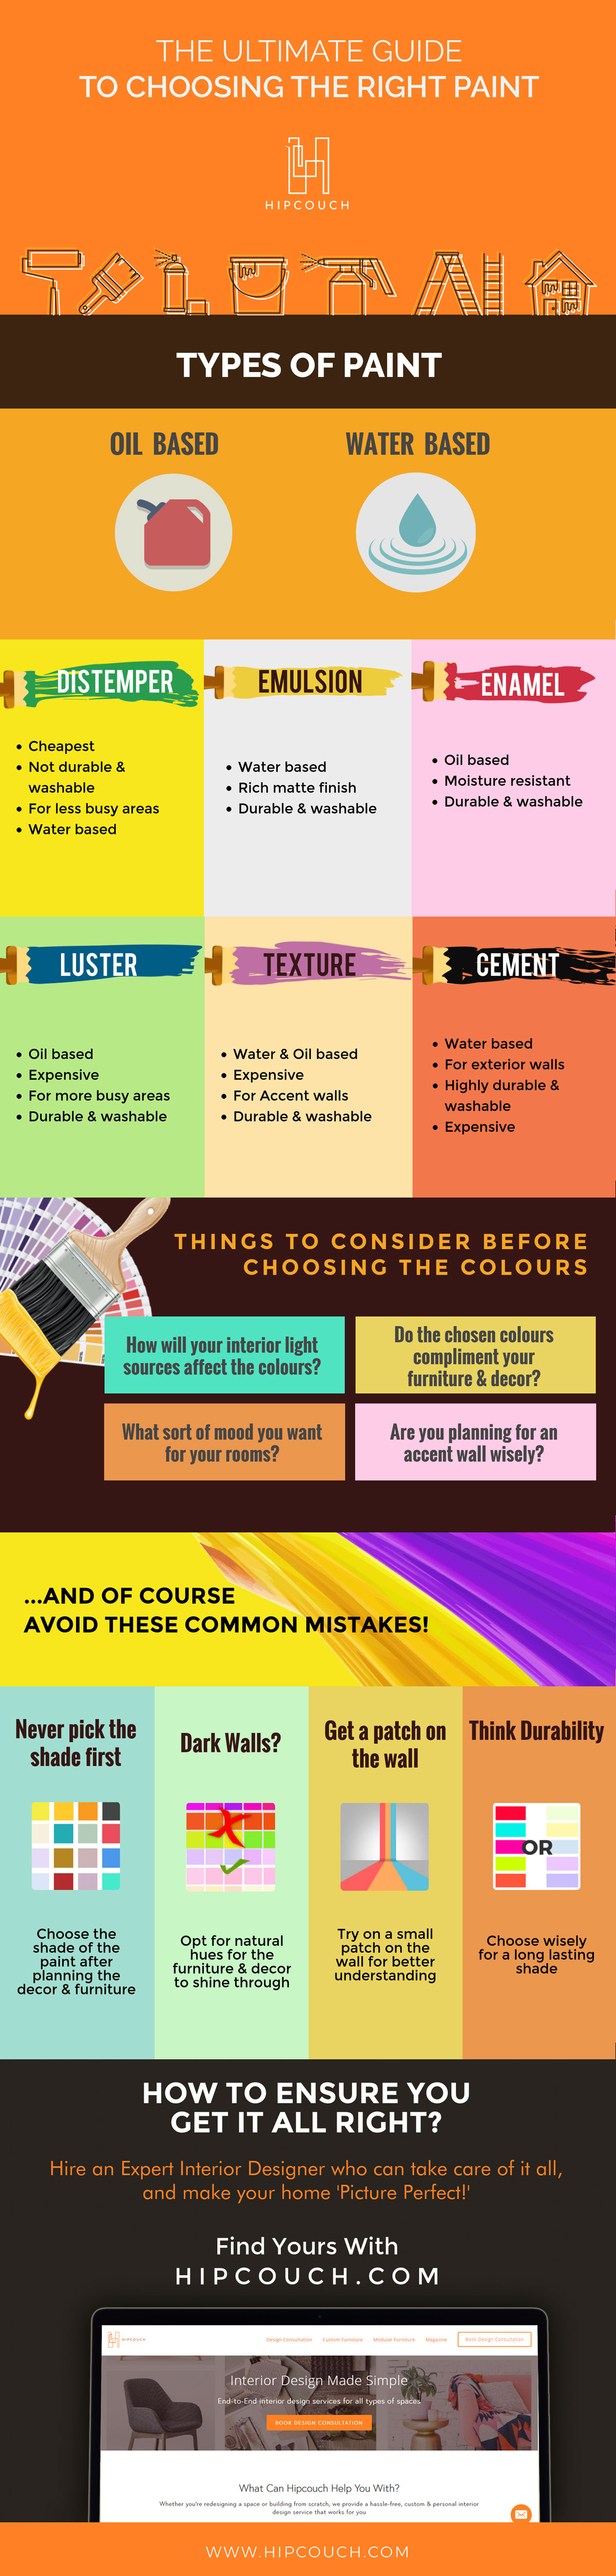 The Ultimate Guide To Choosing The Right Type & Shade Of Paint